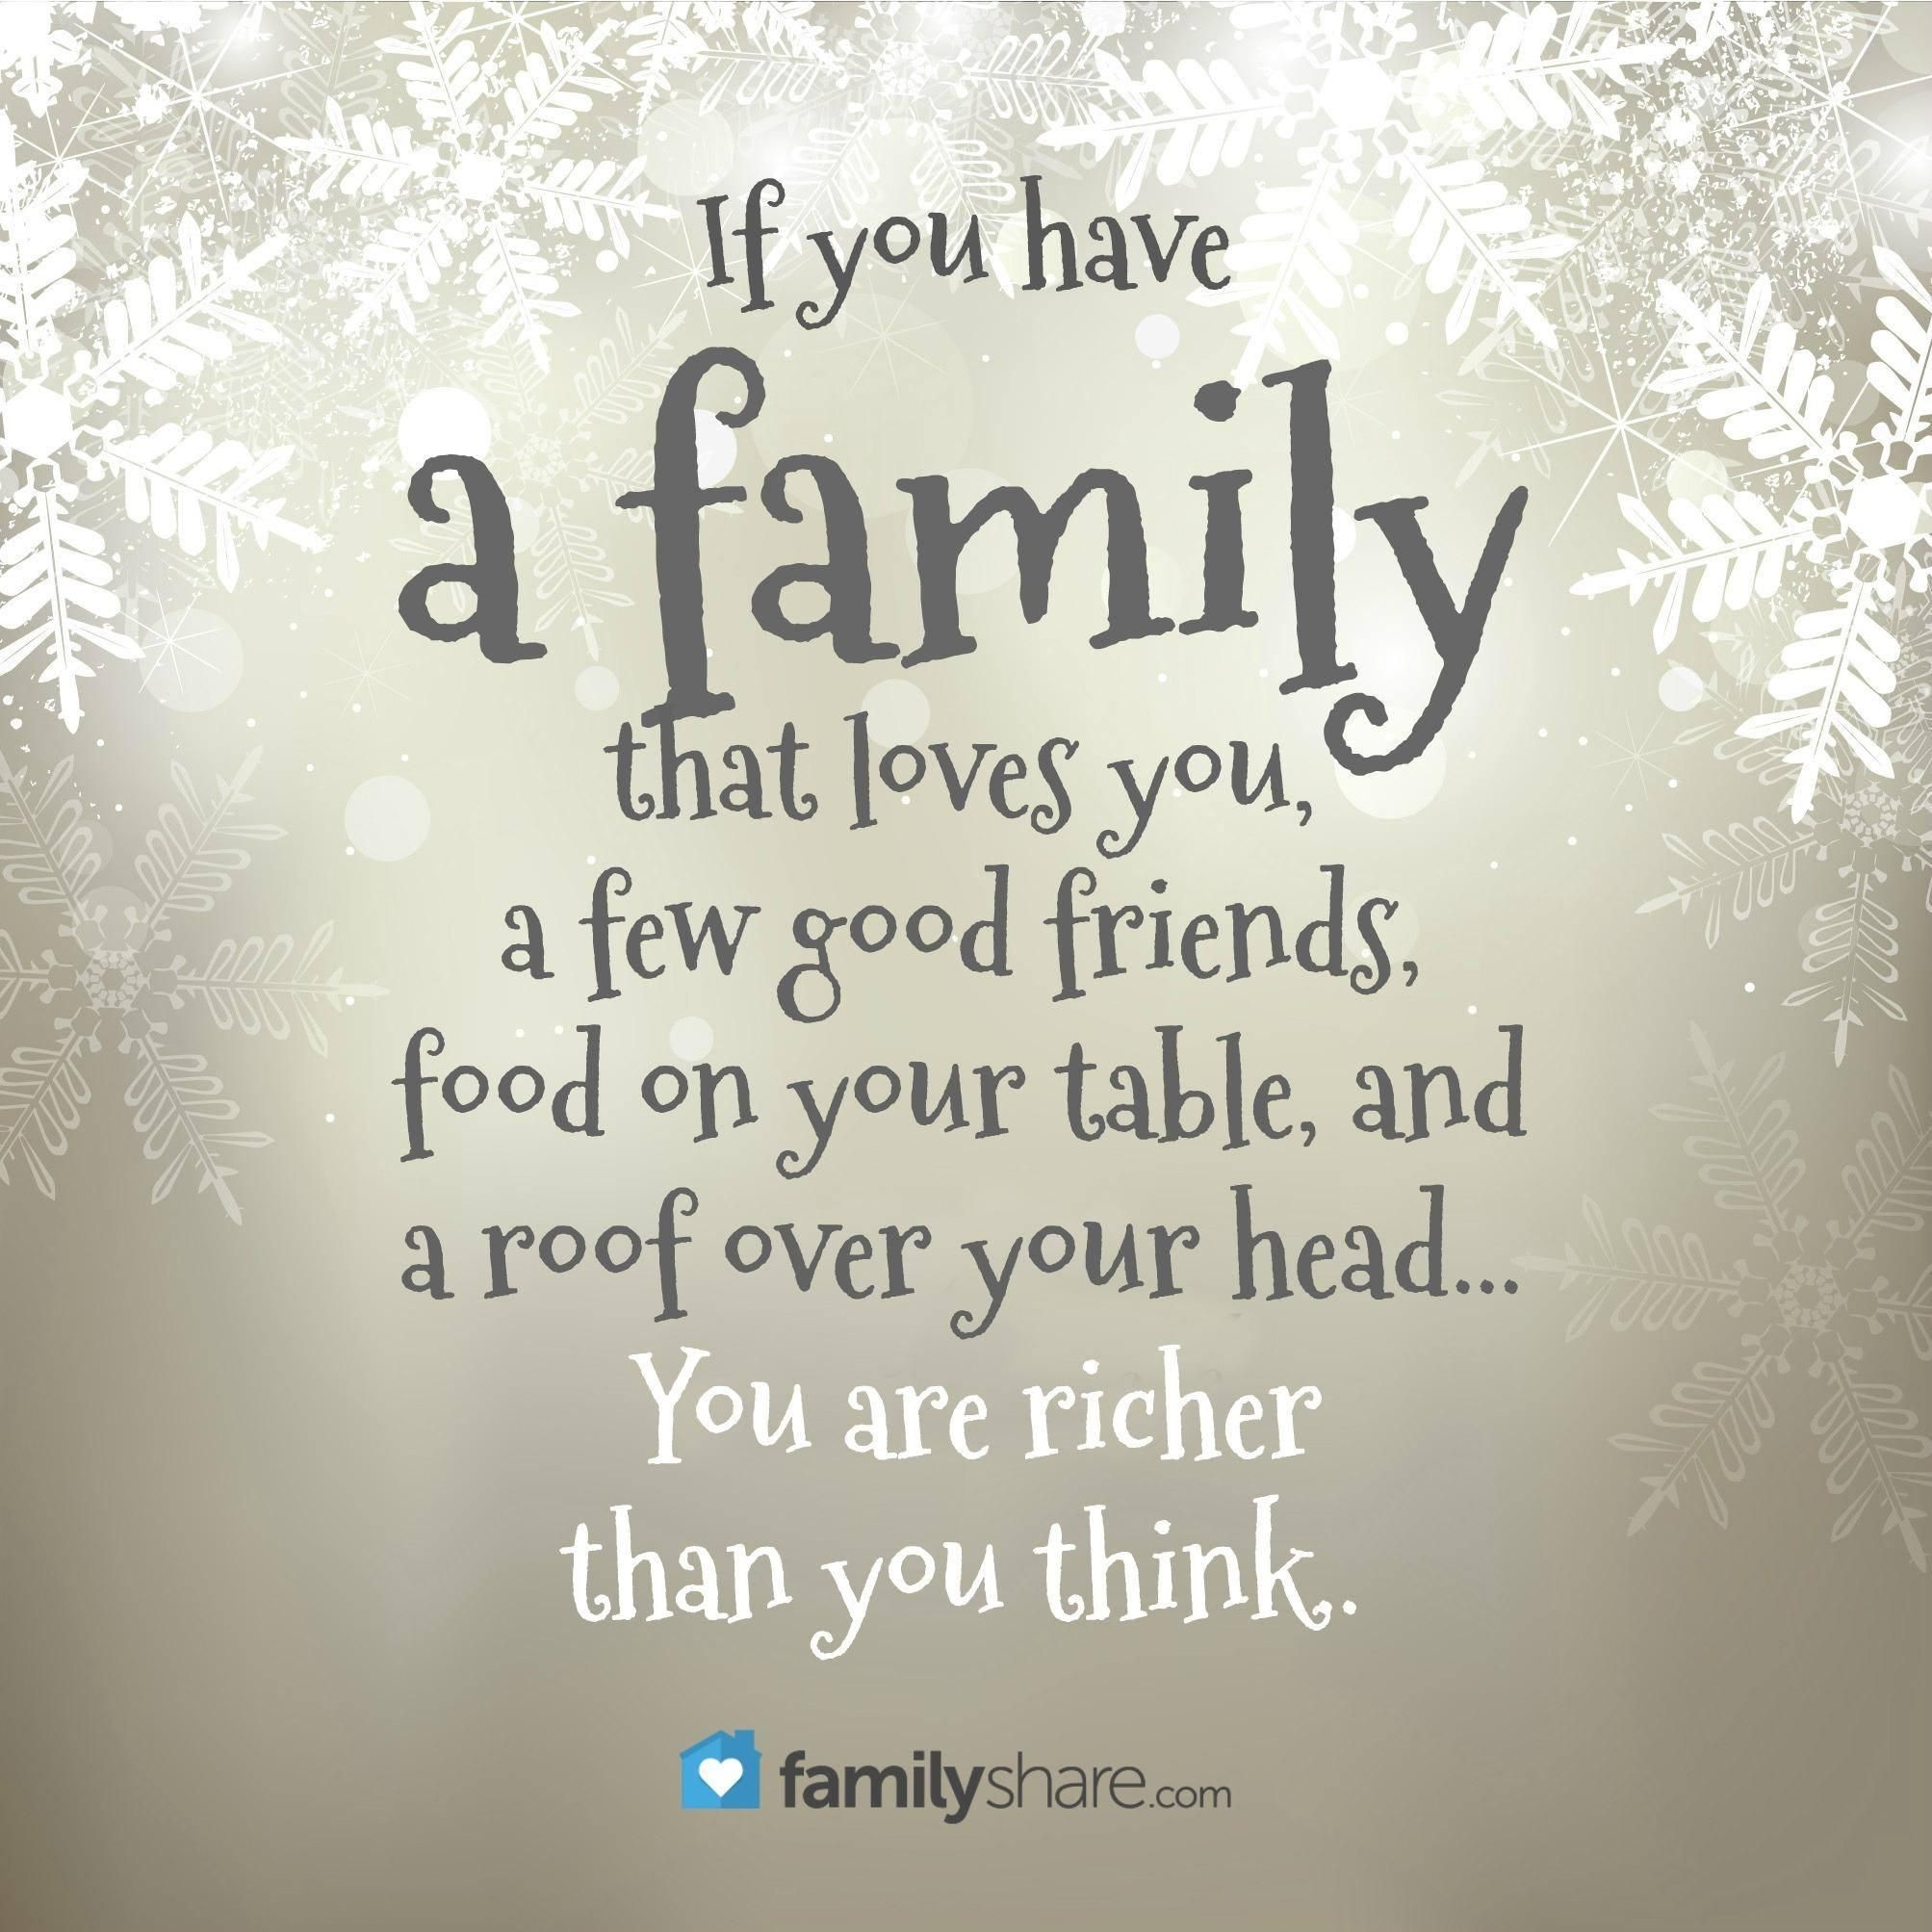 Good Quotes About Love And Friendship If You Have A Family That Loves You A Few Good Friends Food On